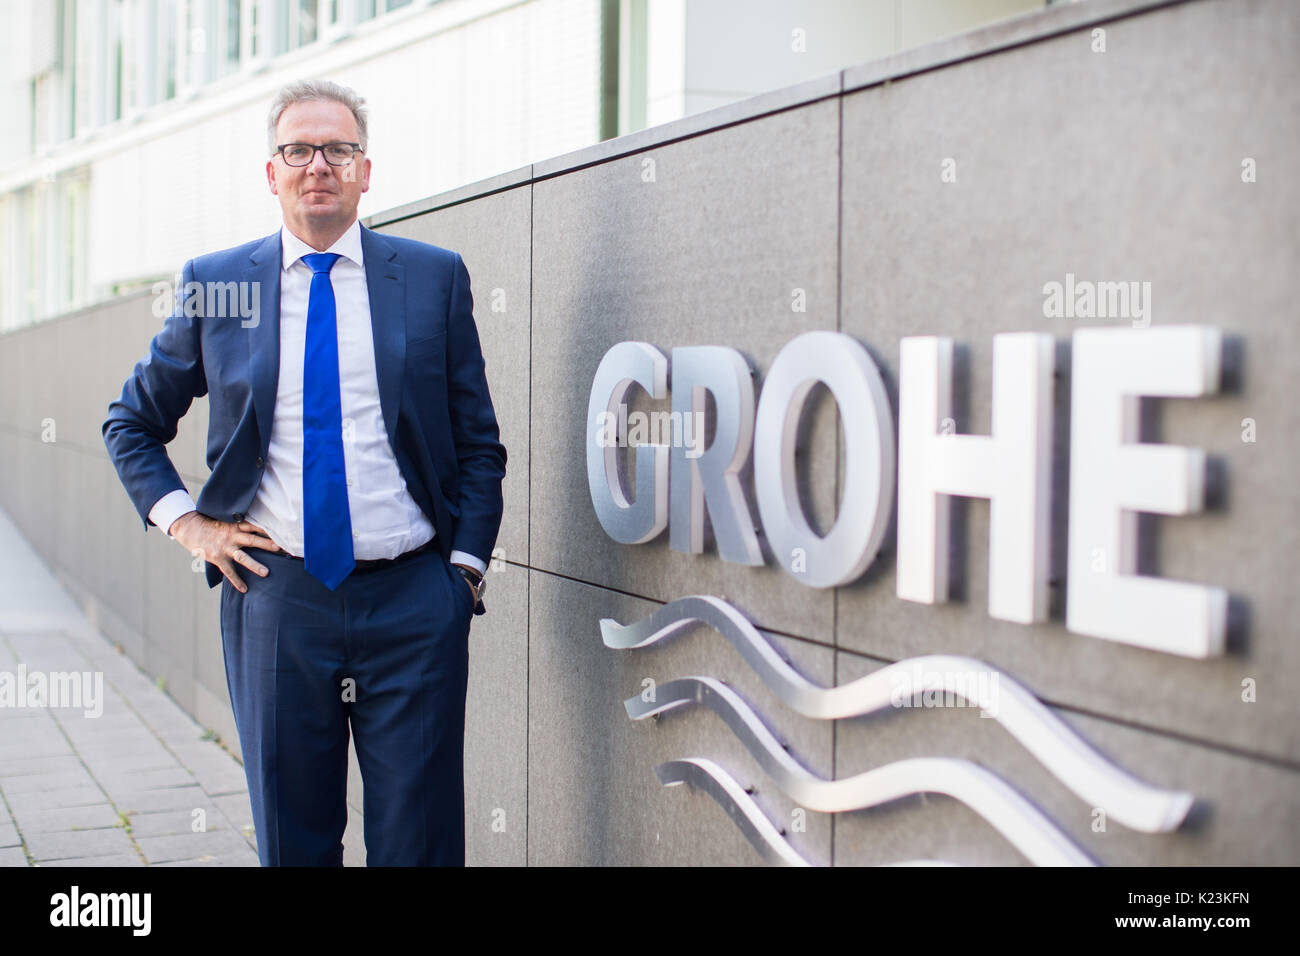 Grohe Ag duesseldorf, germany. 10th aug, 2017. the ceo of the grohe ag stock